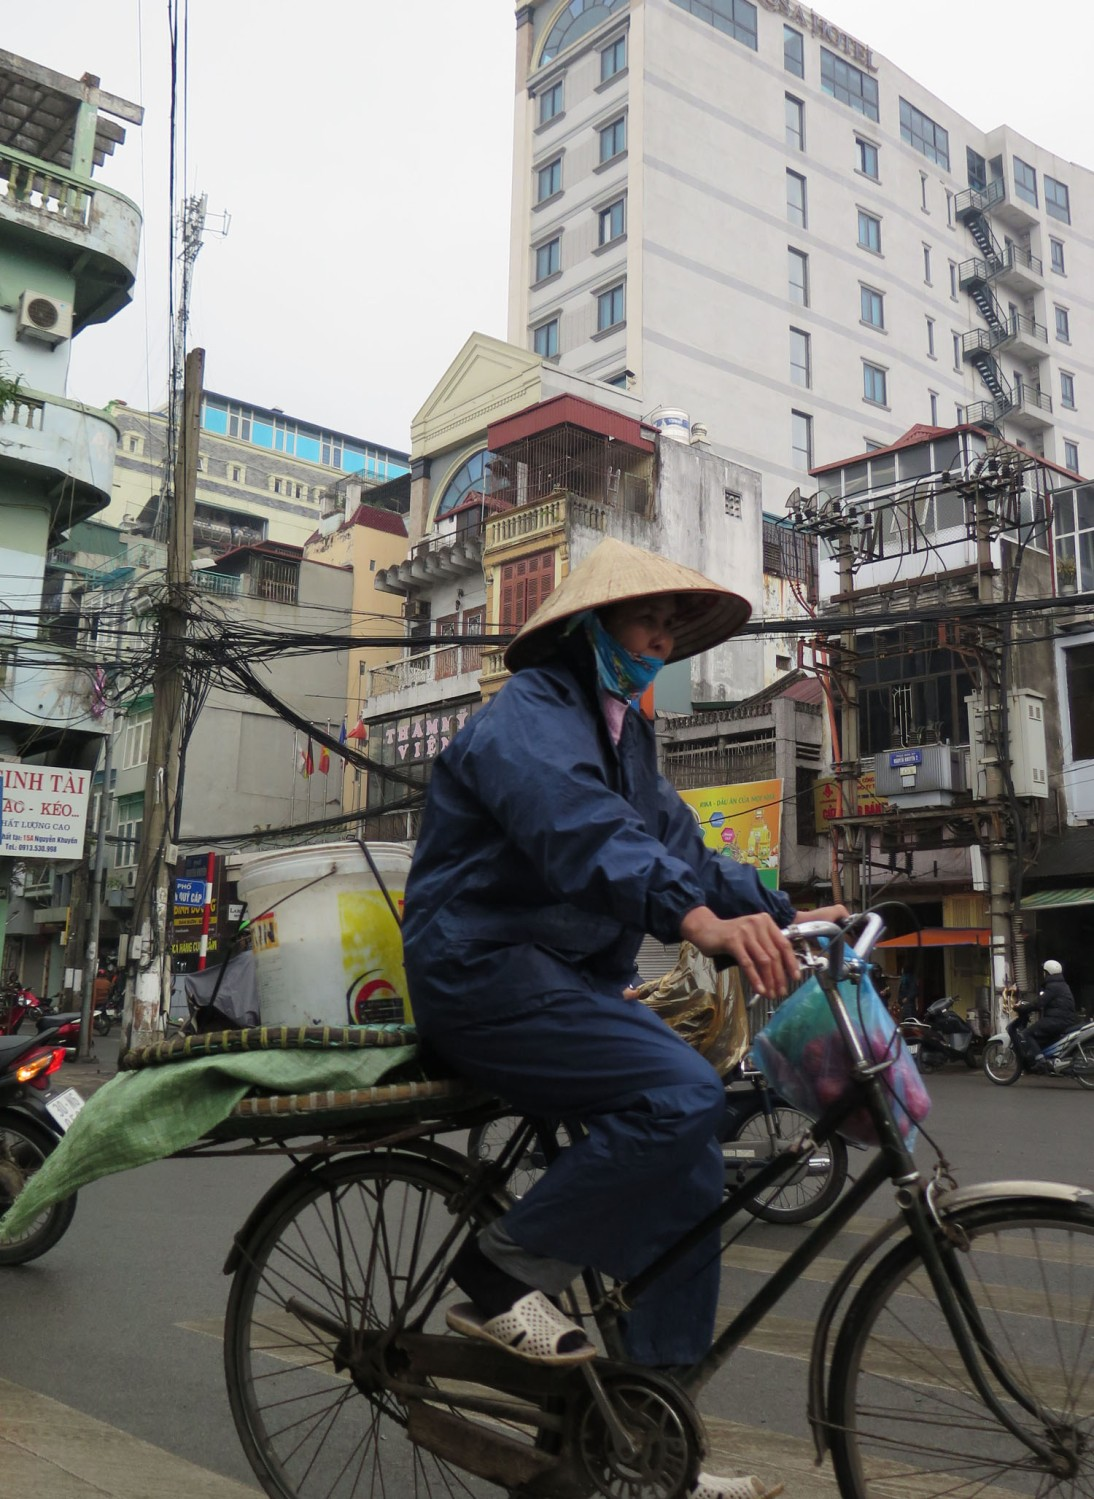 Vietnam-Hanoi-Street-Scenes-Bicycle